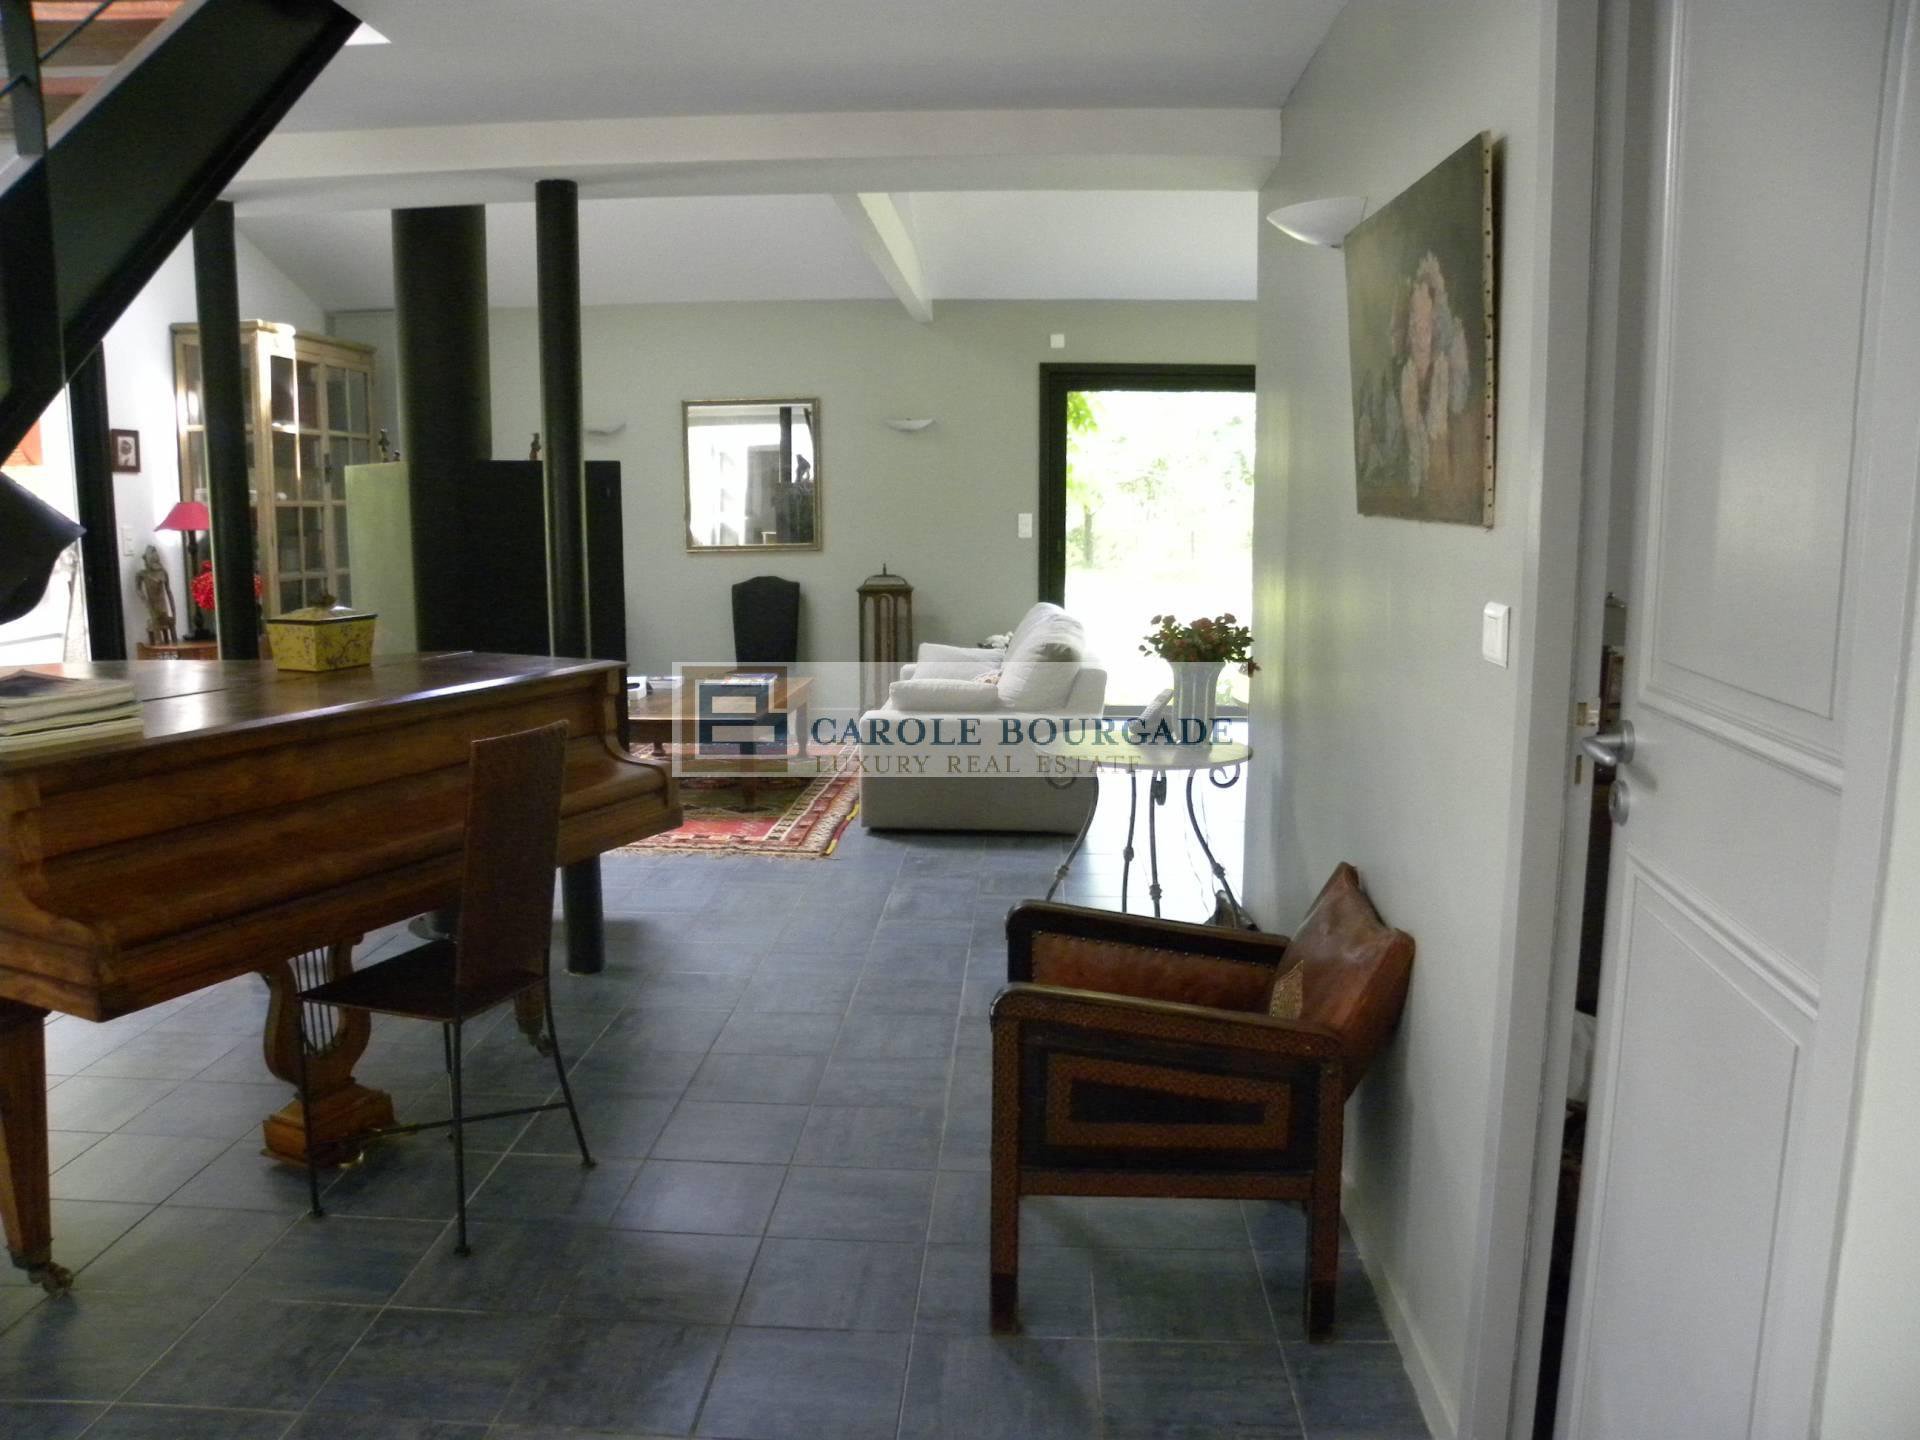 House with garden and swimming pool, tennis, 25 km from the Vinexpo exhibition